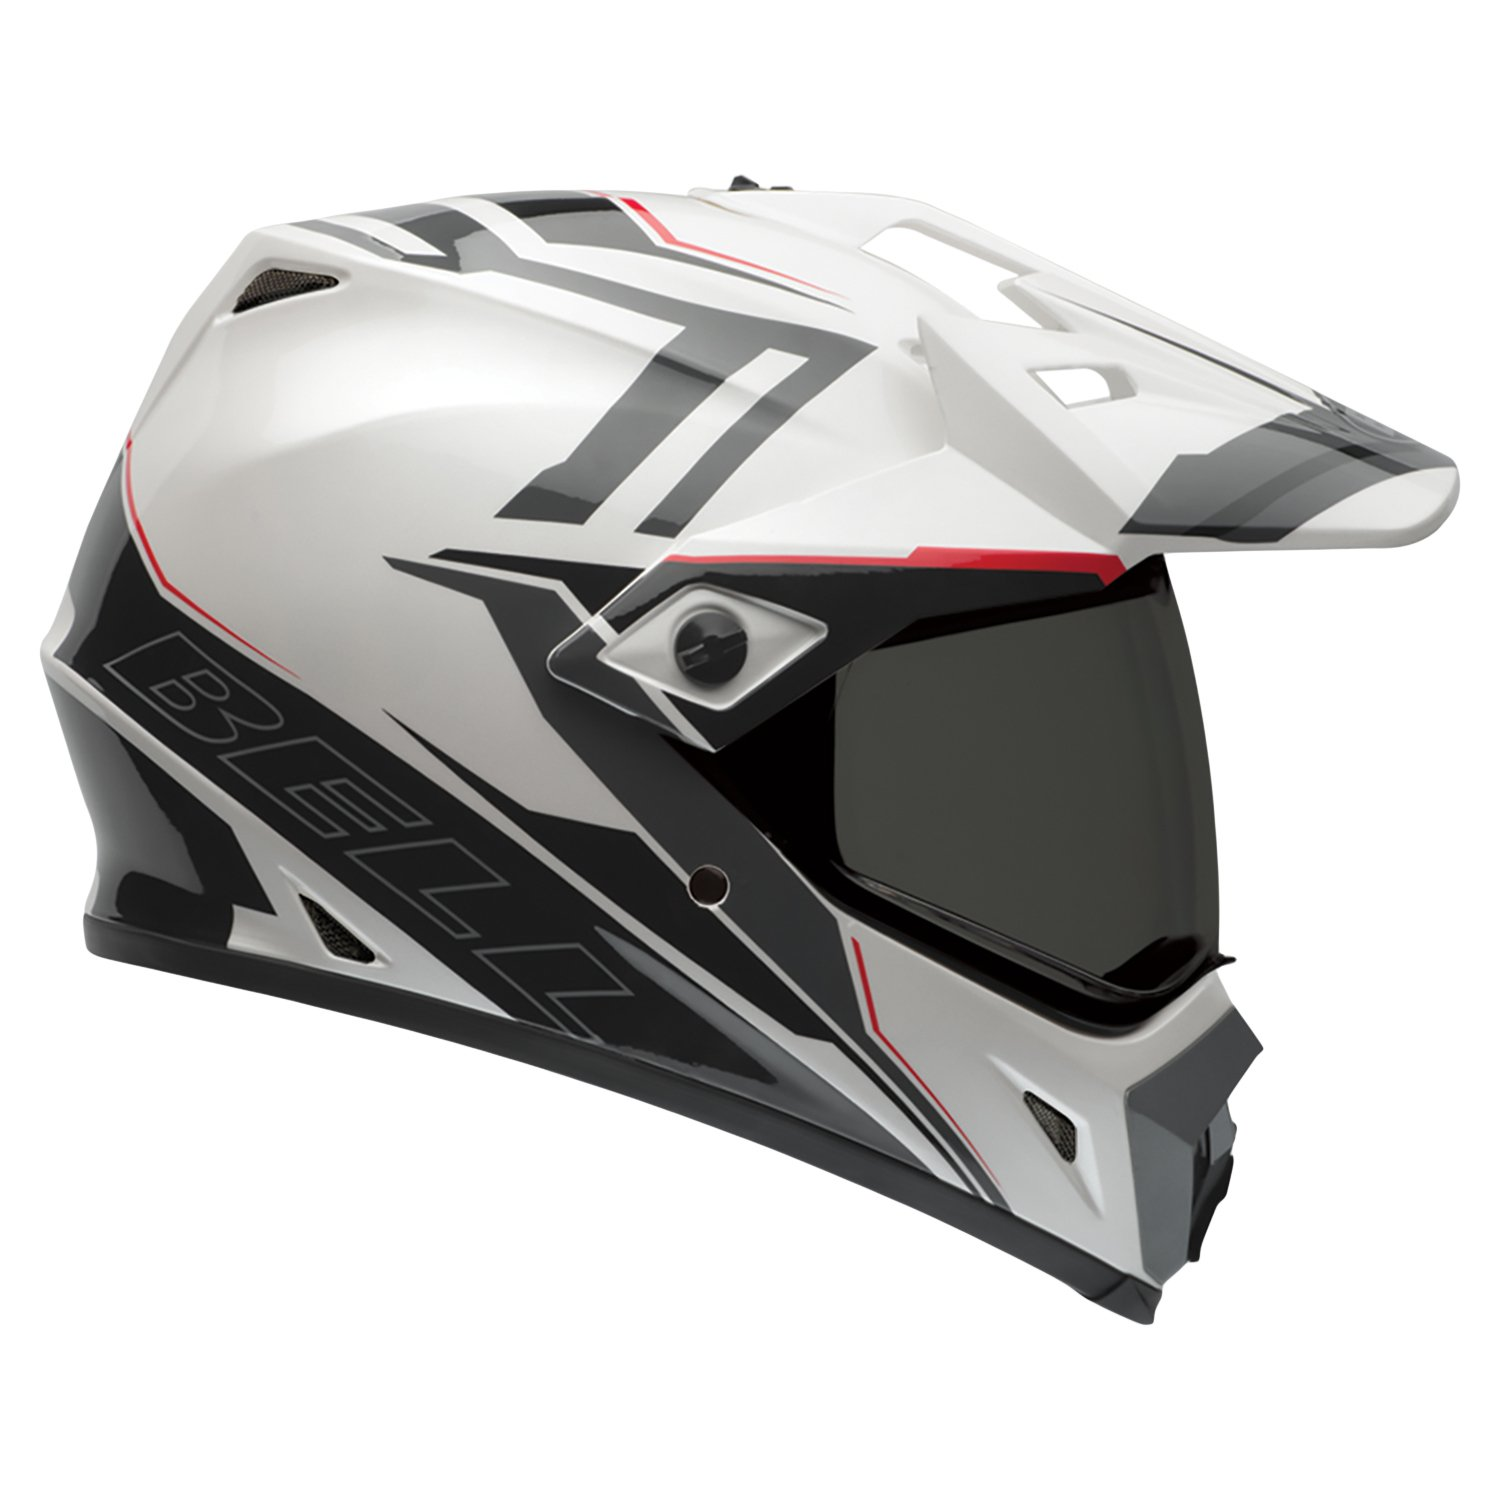 Bell 7061409 Mx-9 Adventure Blockade Casco, Negro, Talla L: Amazon.es: Coche y moto